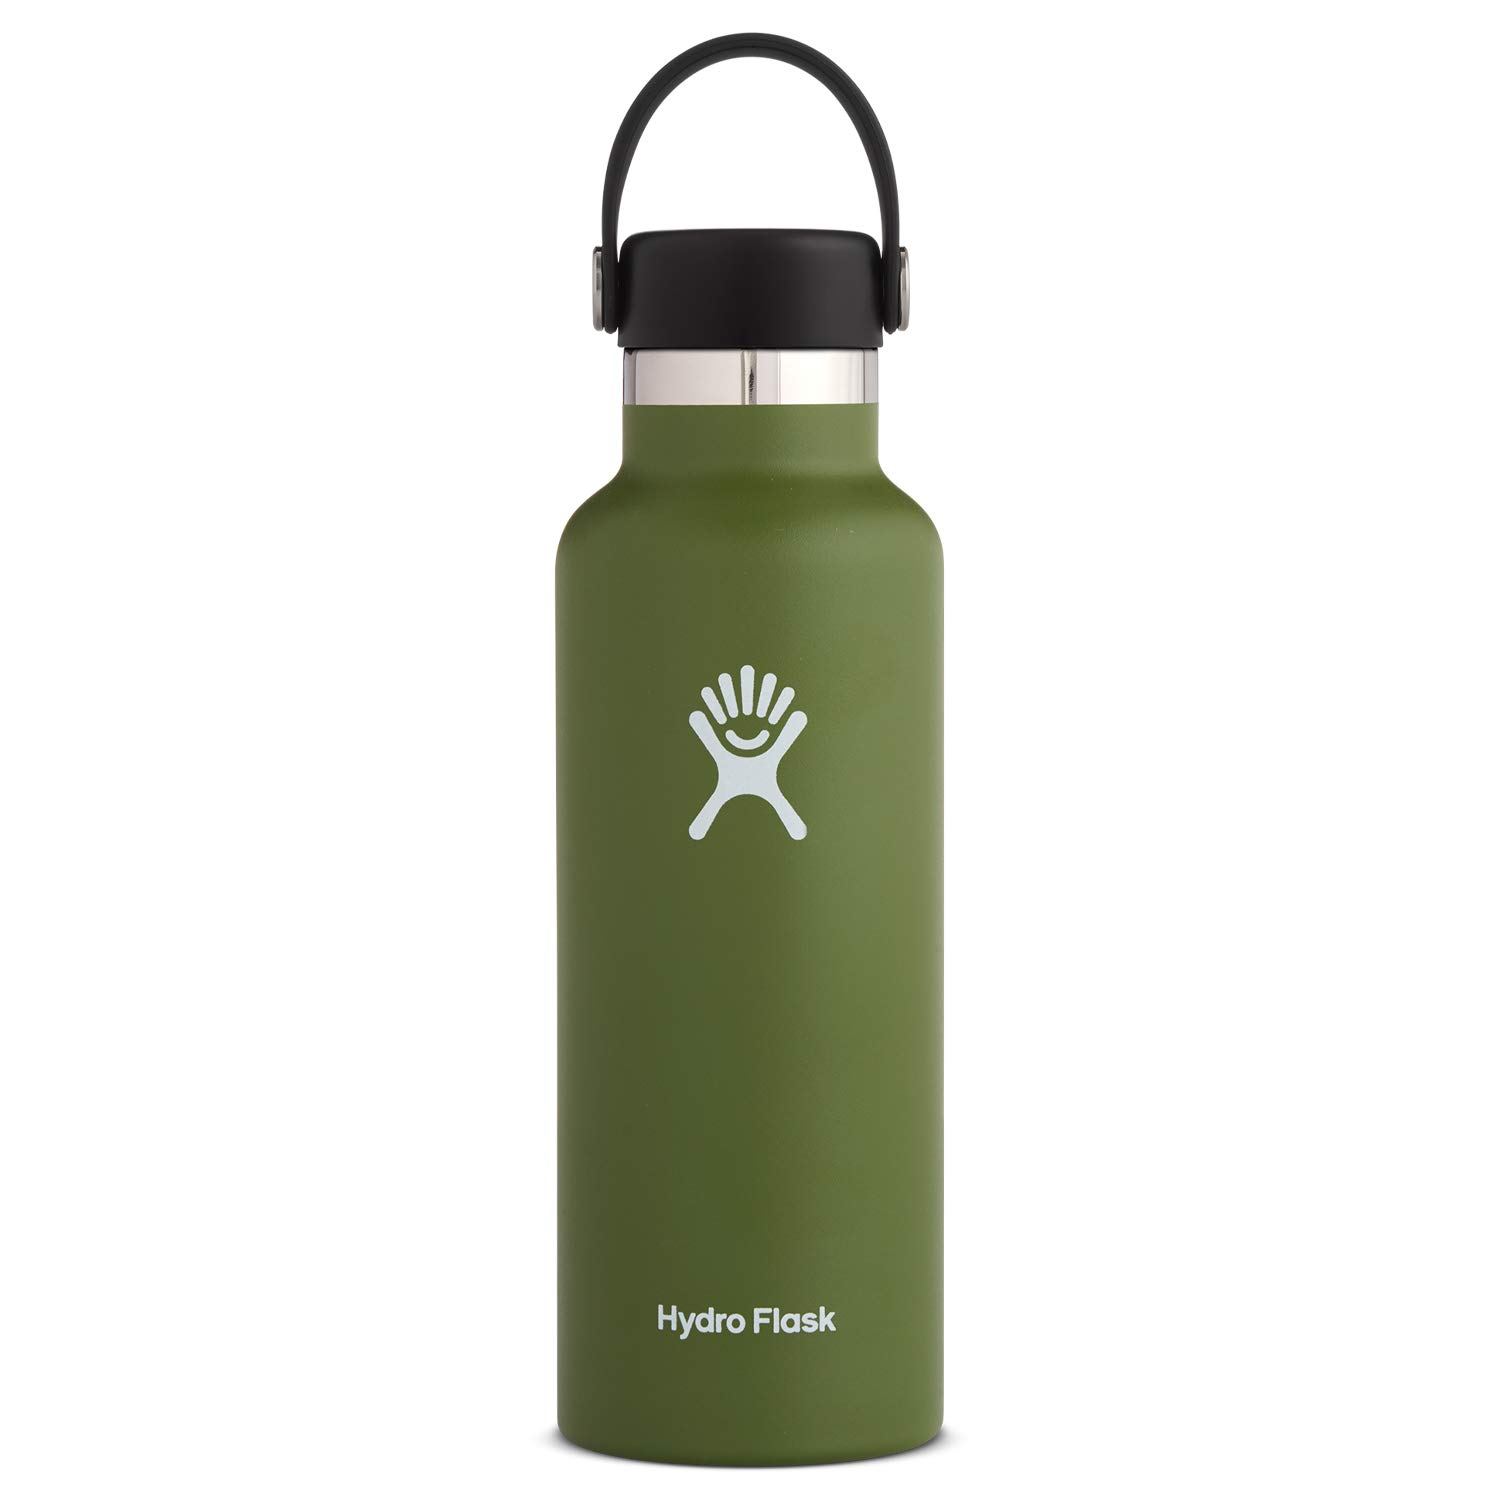 Hydro Flask Water Bottle - Stainless Steel & Vacuum Insulated - Standard Mouth with Leak Proof Flex Cap - 18 oz, Olive by Hydro Flask